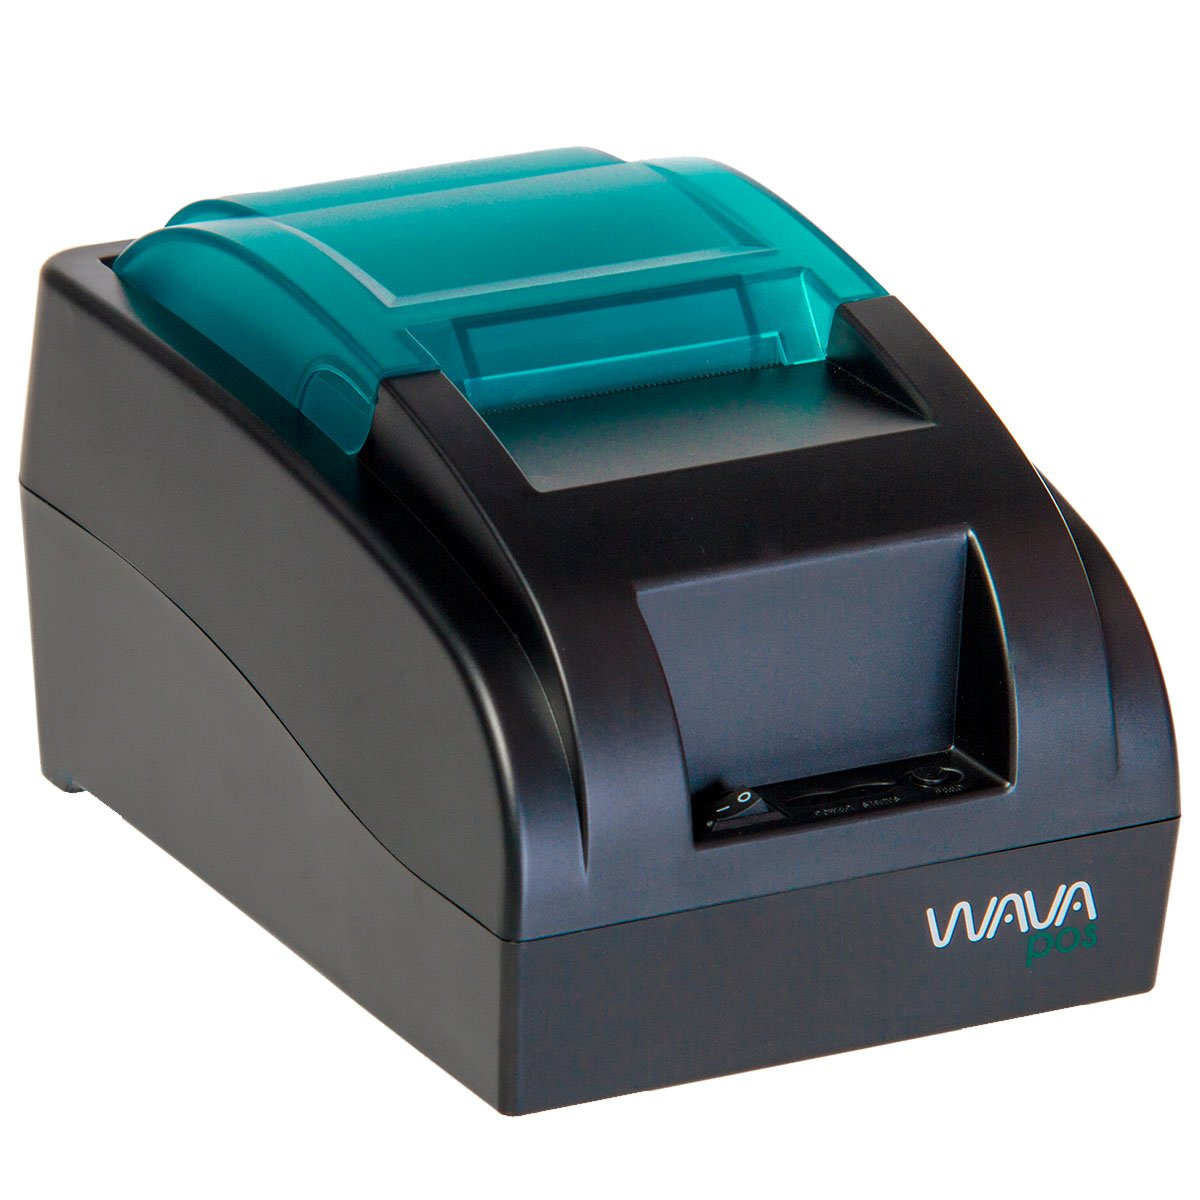 WavaPos 58MM USB Thermal Receipt Printer Model W-POS58 - High Speed Printing, Paper Width 2 1/4'' - Pos Receipt Printer for Restaurant, Sales, Kitchen, Retail - Small Receipt Printer - by WAVA